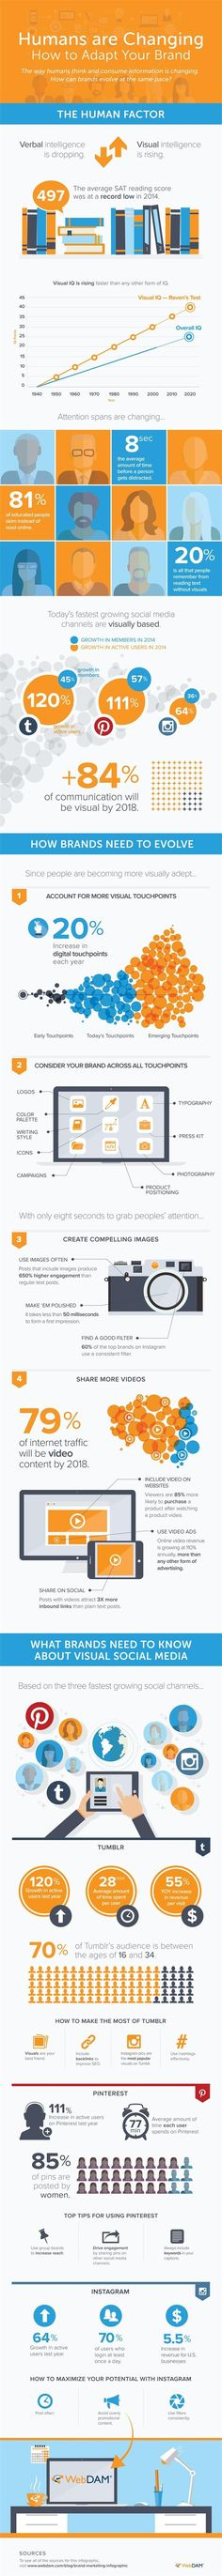 Social Media - What Brands Need to Know About Visual Social Media [Infographic] : MarketingProfs Article